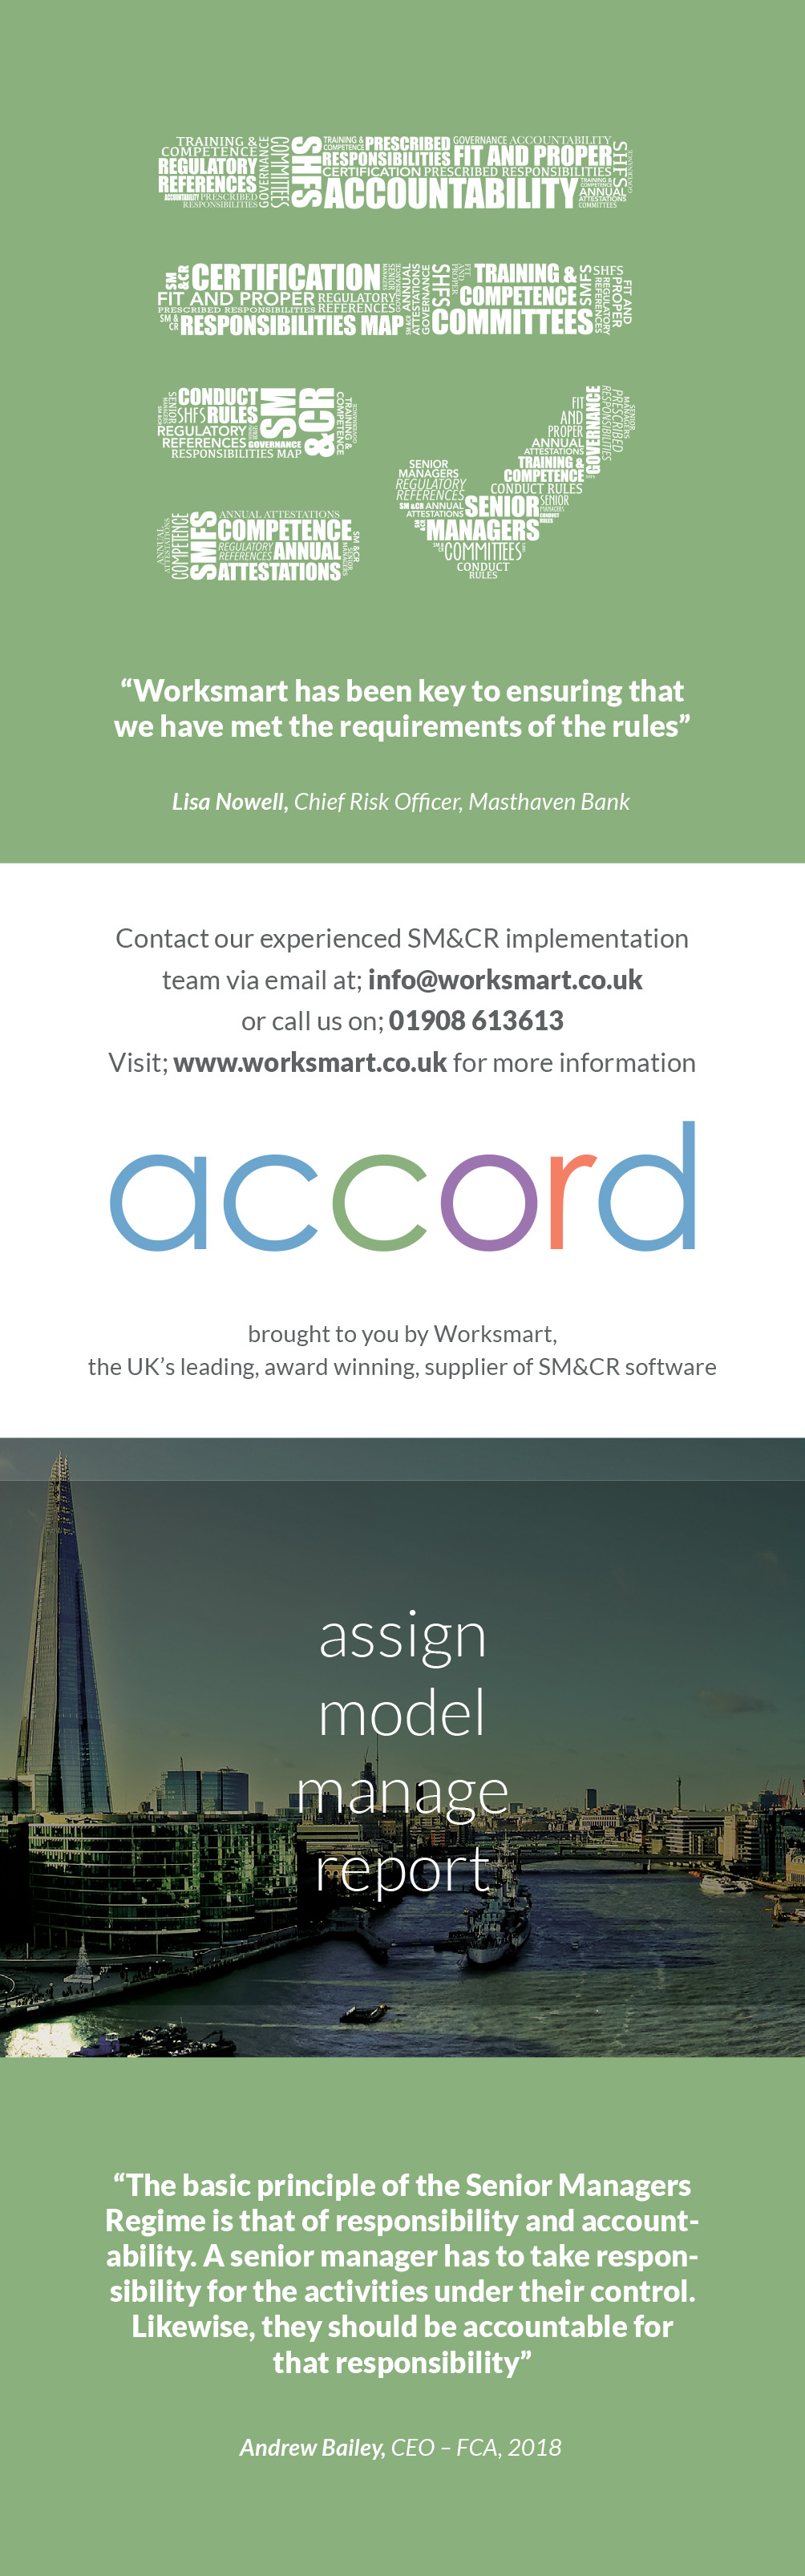 Contact details for Worksmart